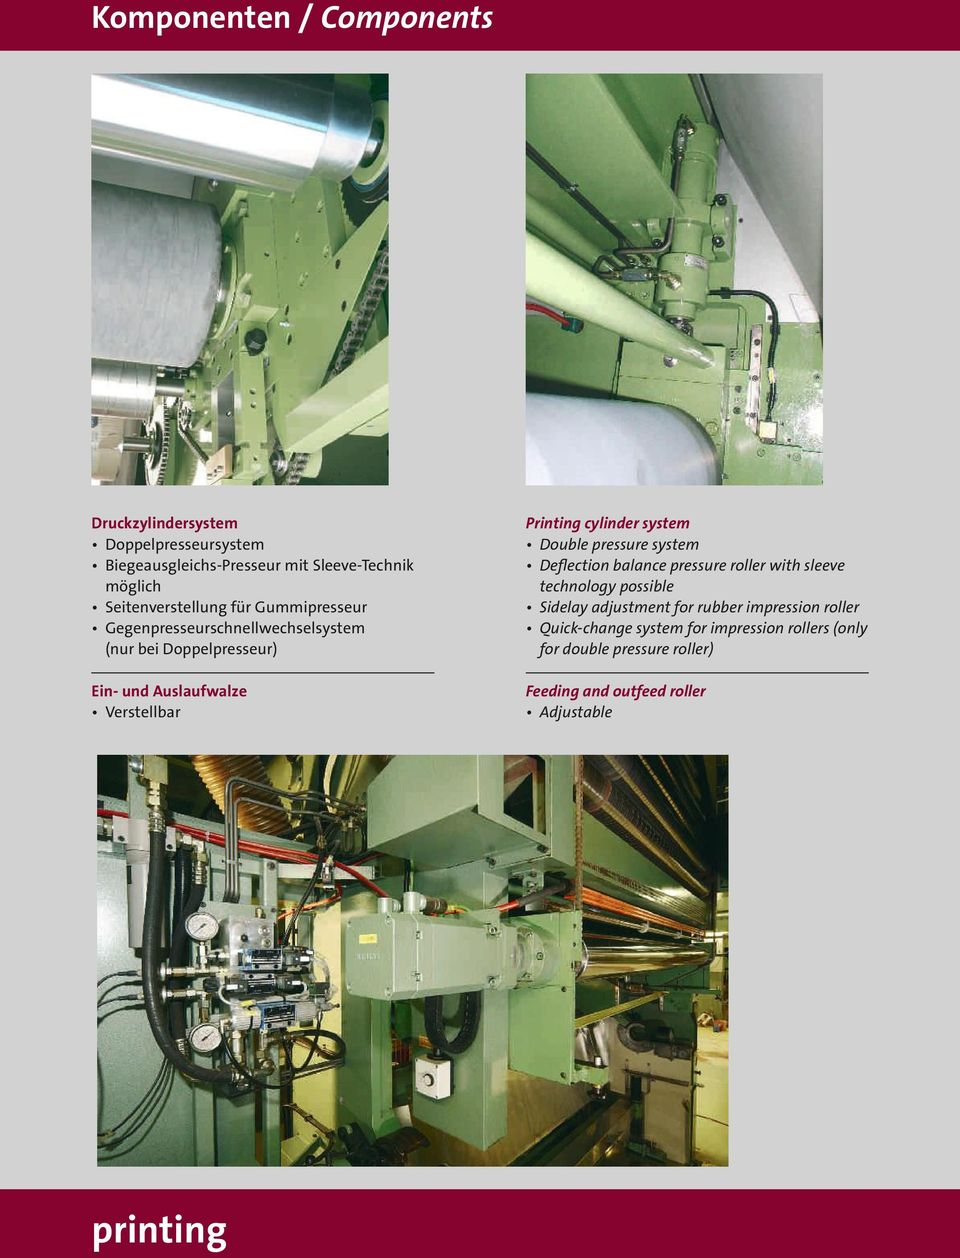 Printing cylinder system Double pressure system Deflection balance pressure roller with sleeve technology possible Sidelay